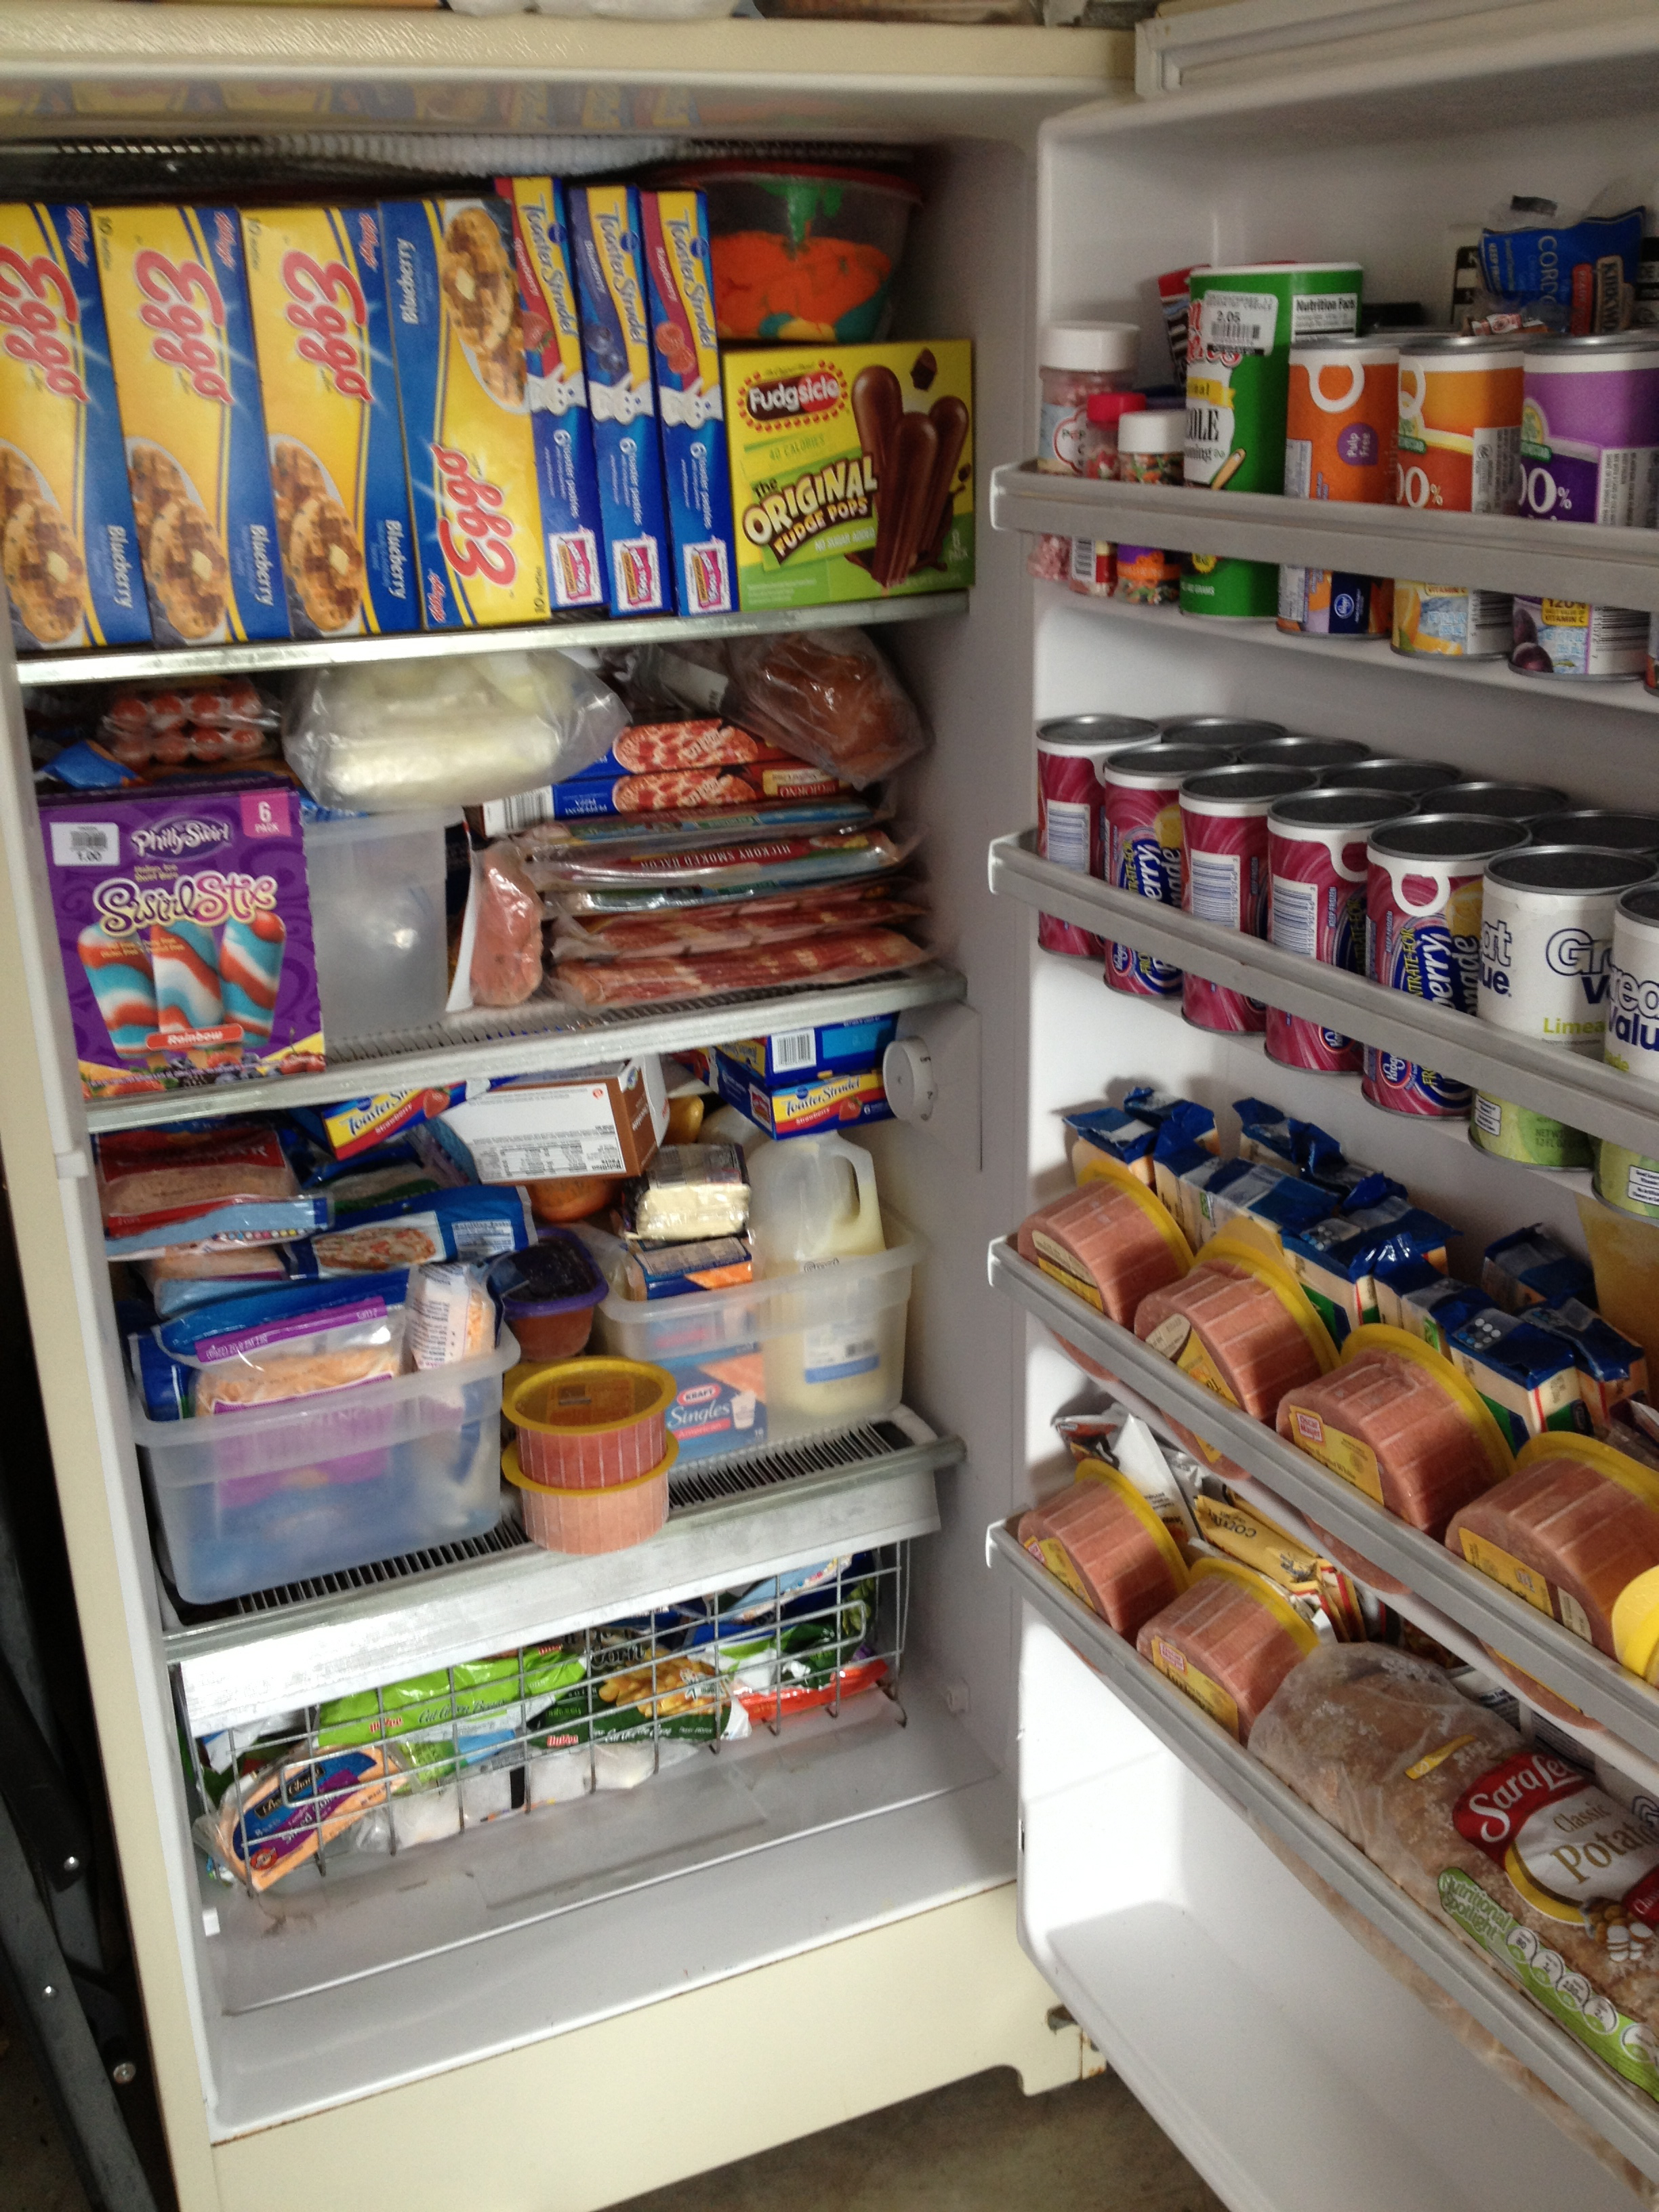 Organized Home Fantastic Freezers Andreabcreative